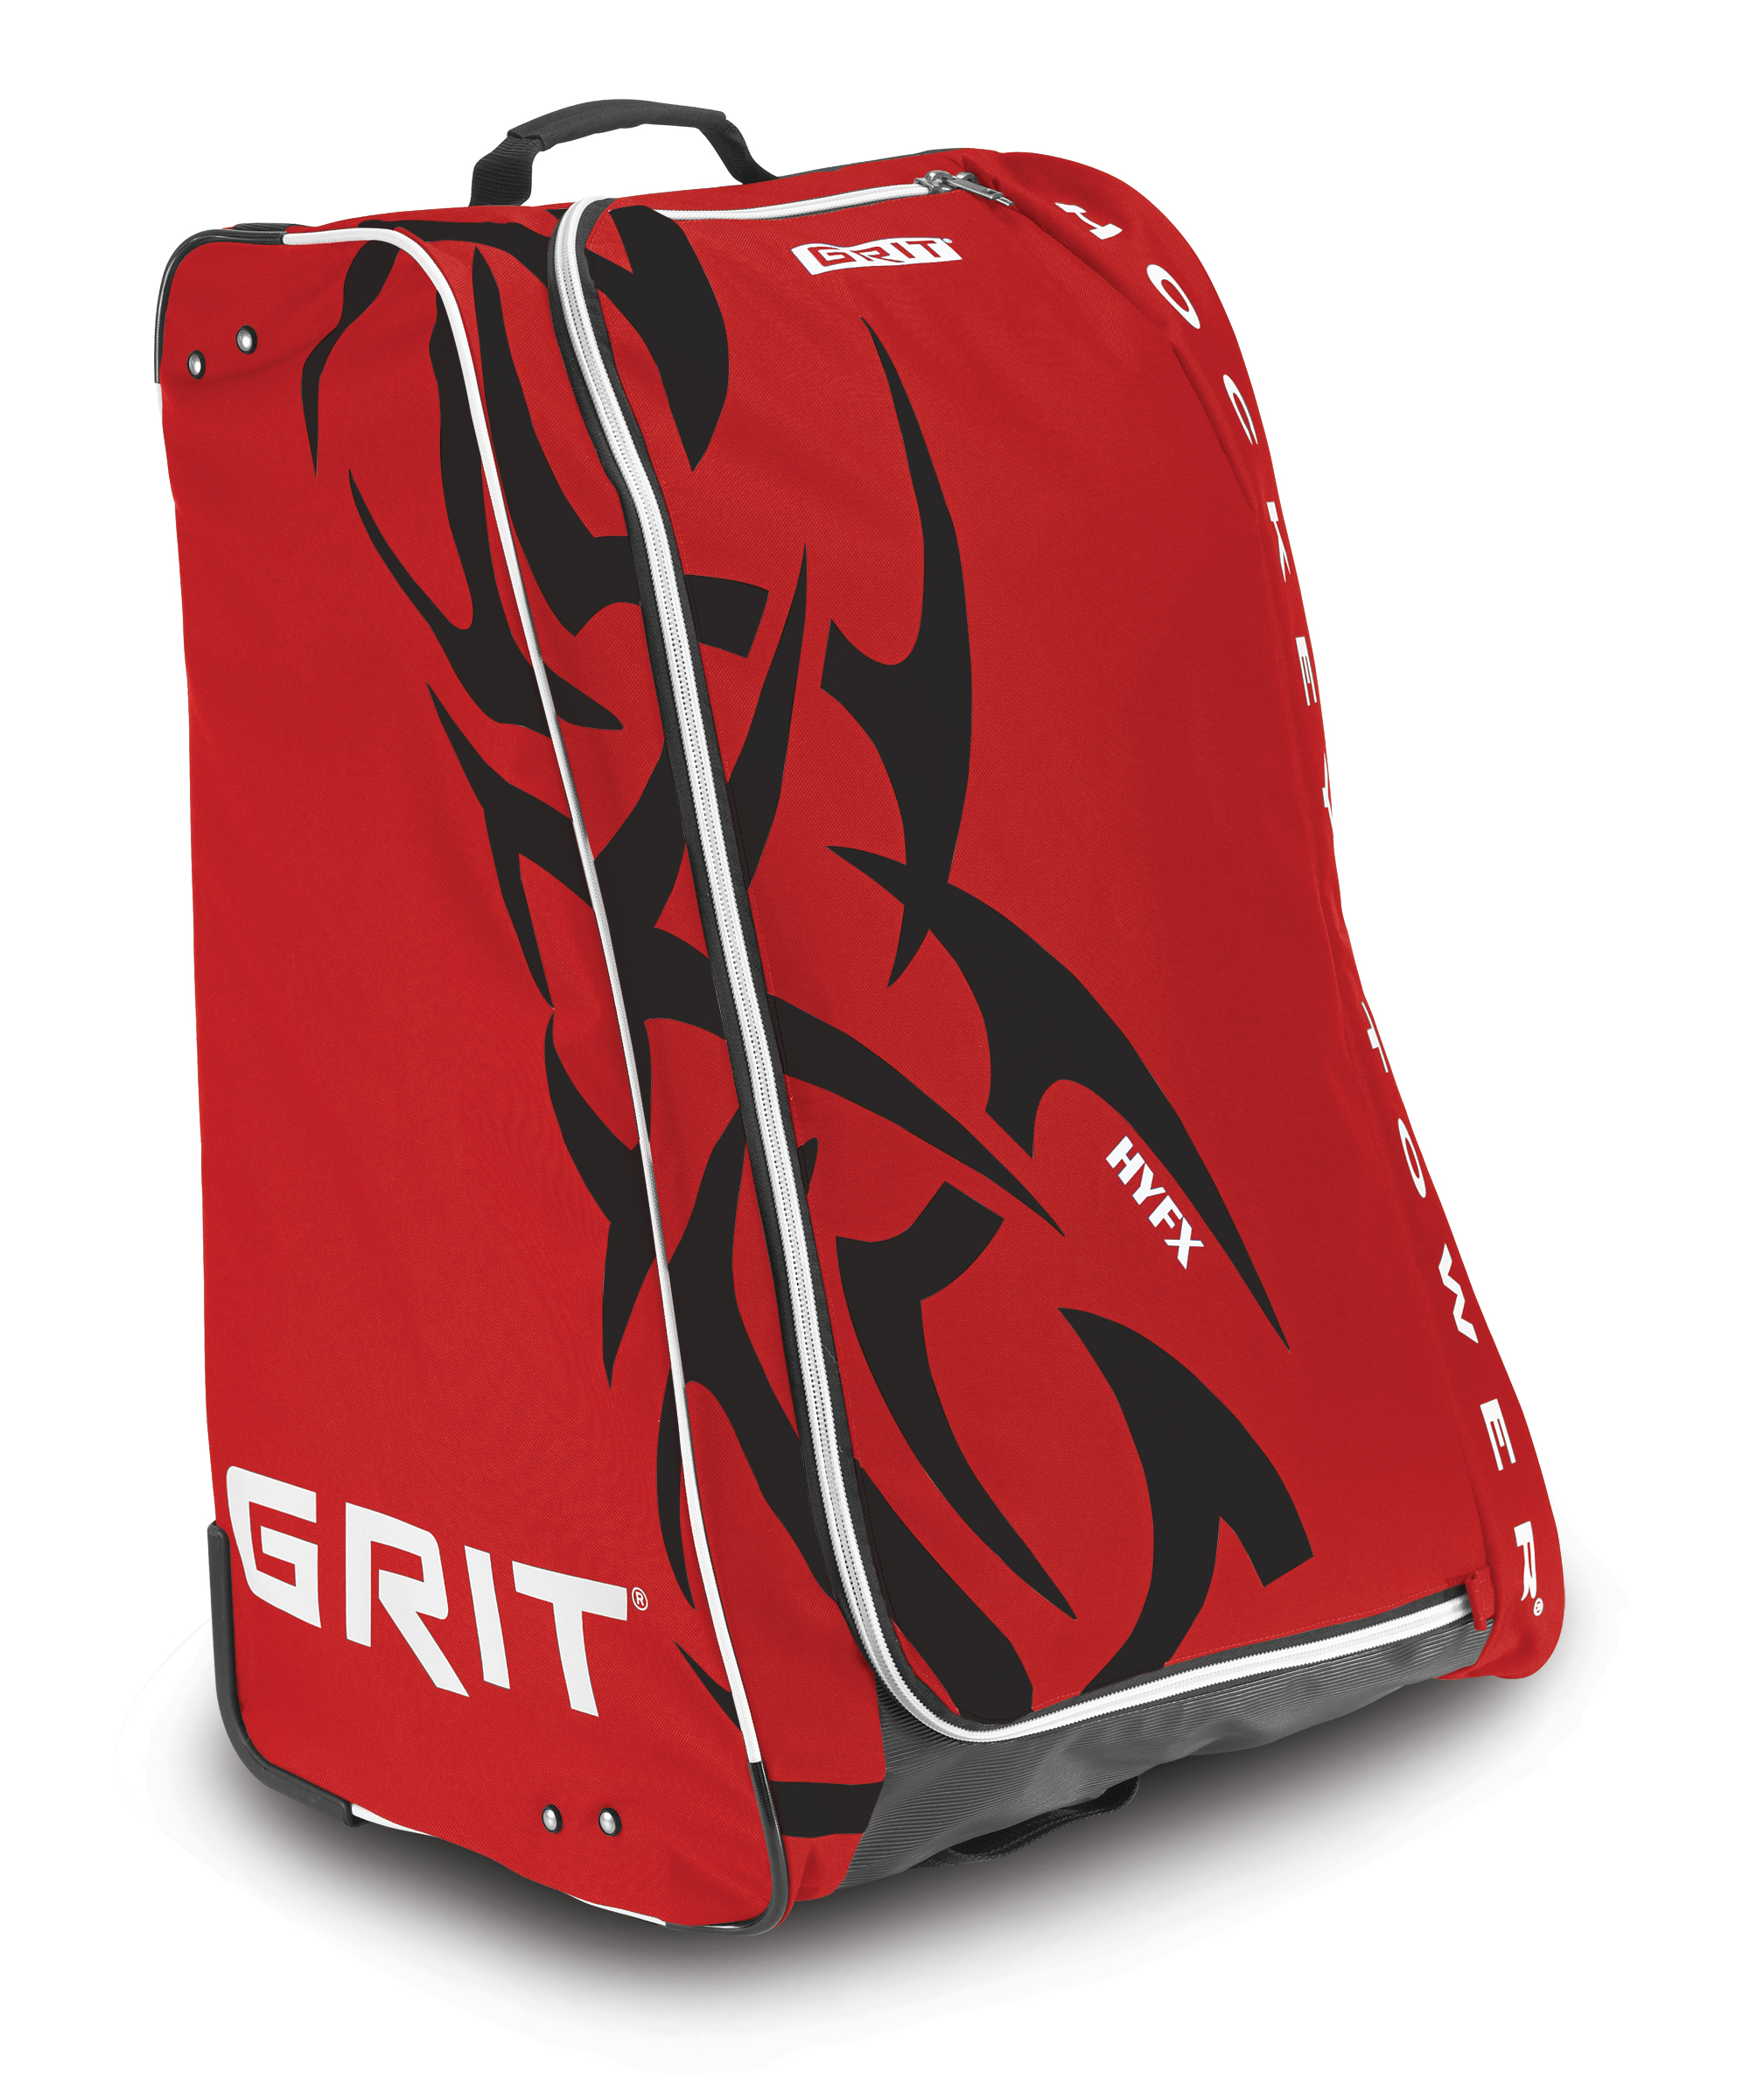 "Grit Inc HYFX Junior Hockey Tower 30"" Wheeled Equipment Bag Chicago HYFX-030-CH by Grit Inc"